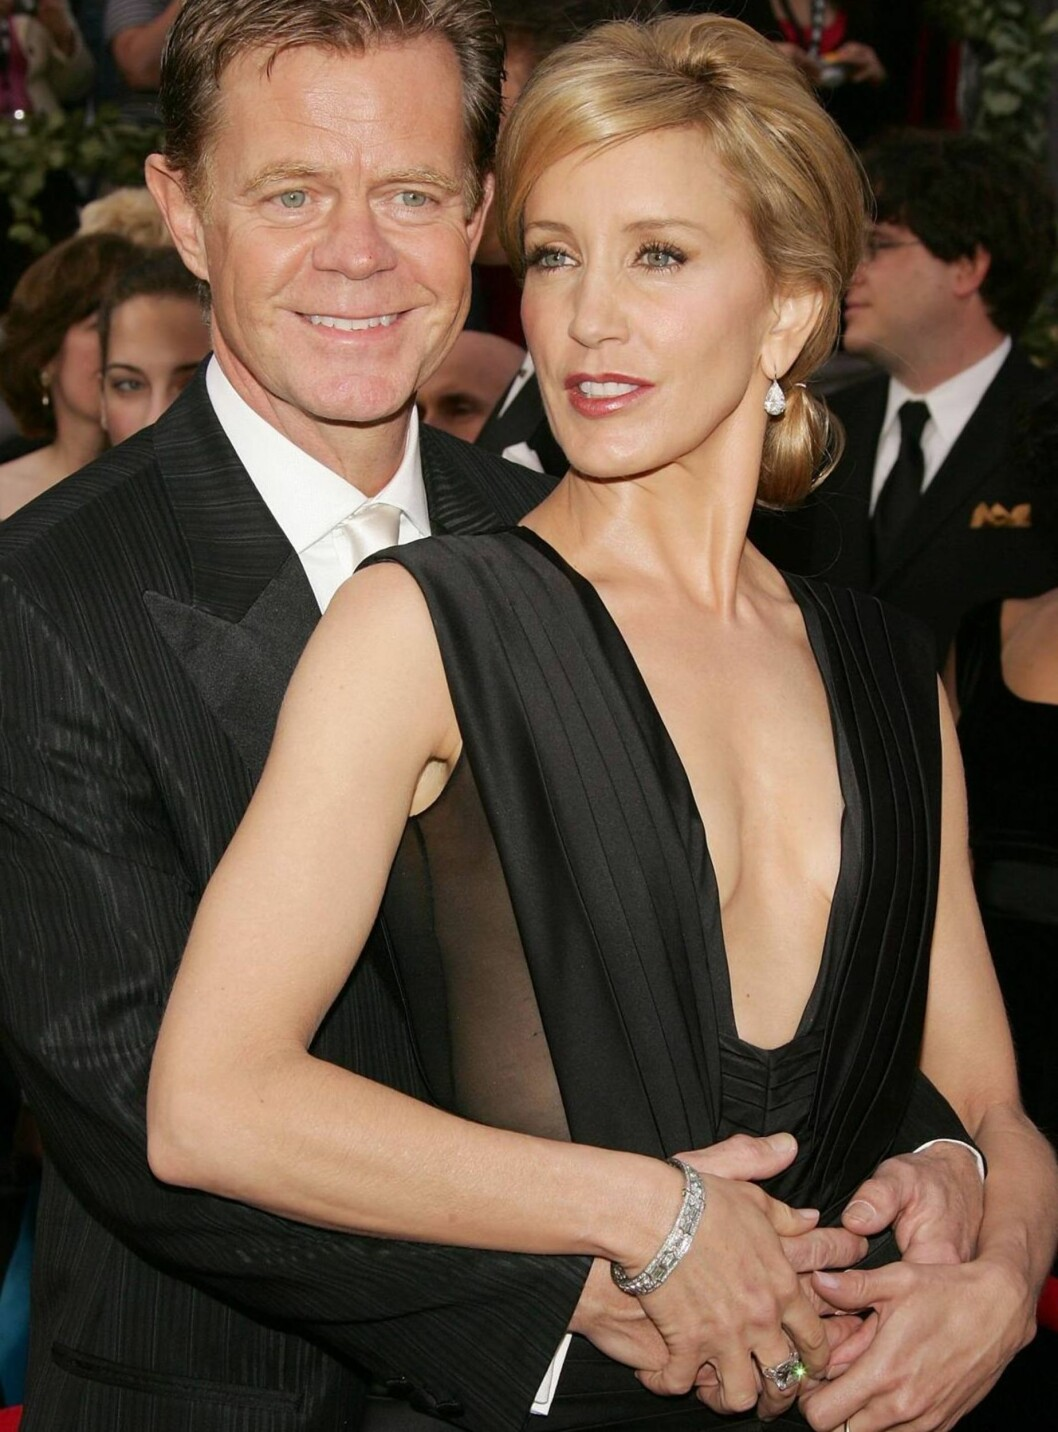 TAR SEG EN TÅR: William H. Macy og Felicity Huffman roer nervene med sprit. Foto: All Over Press